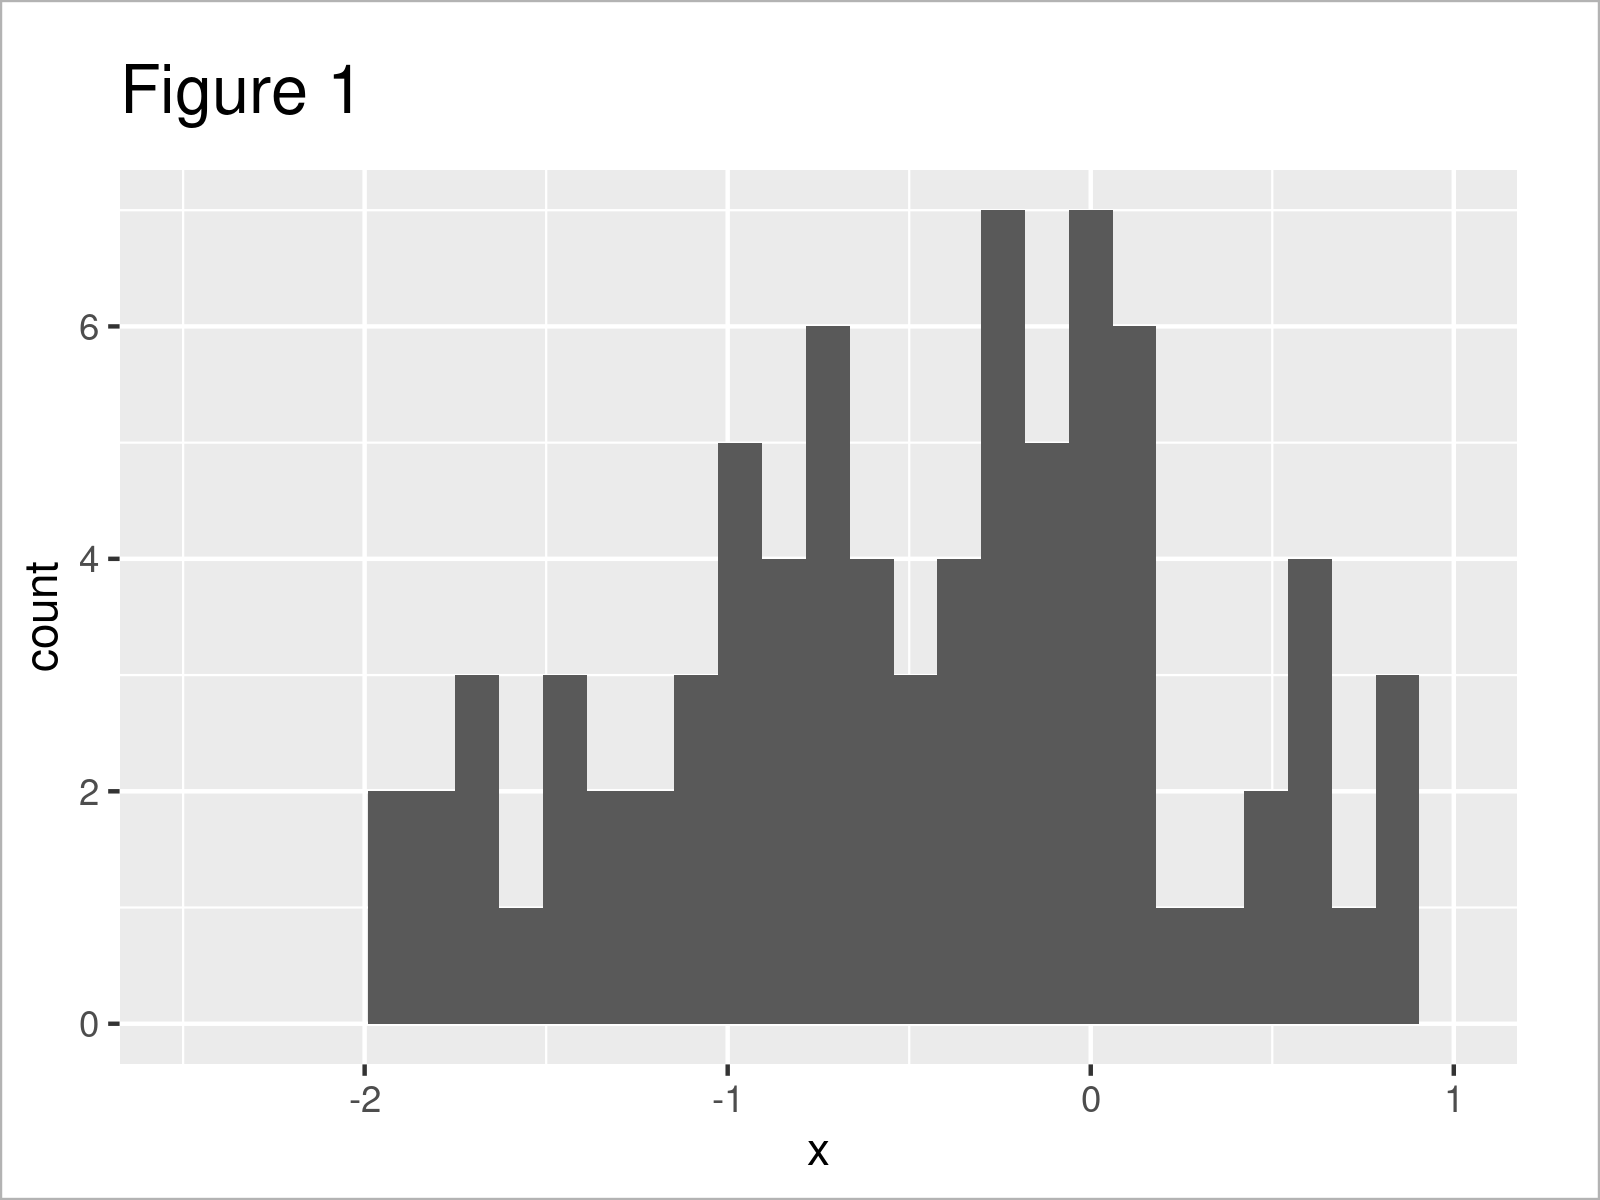 r graph figure 1 r warning removed rows containing non finite values